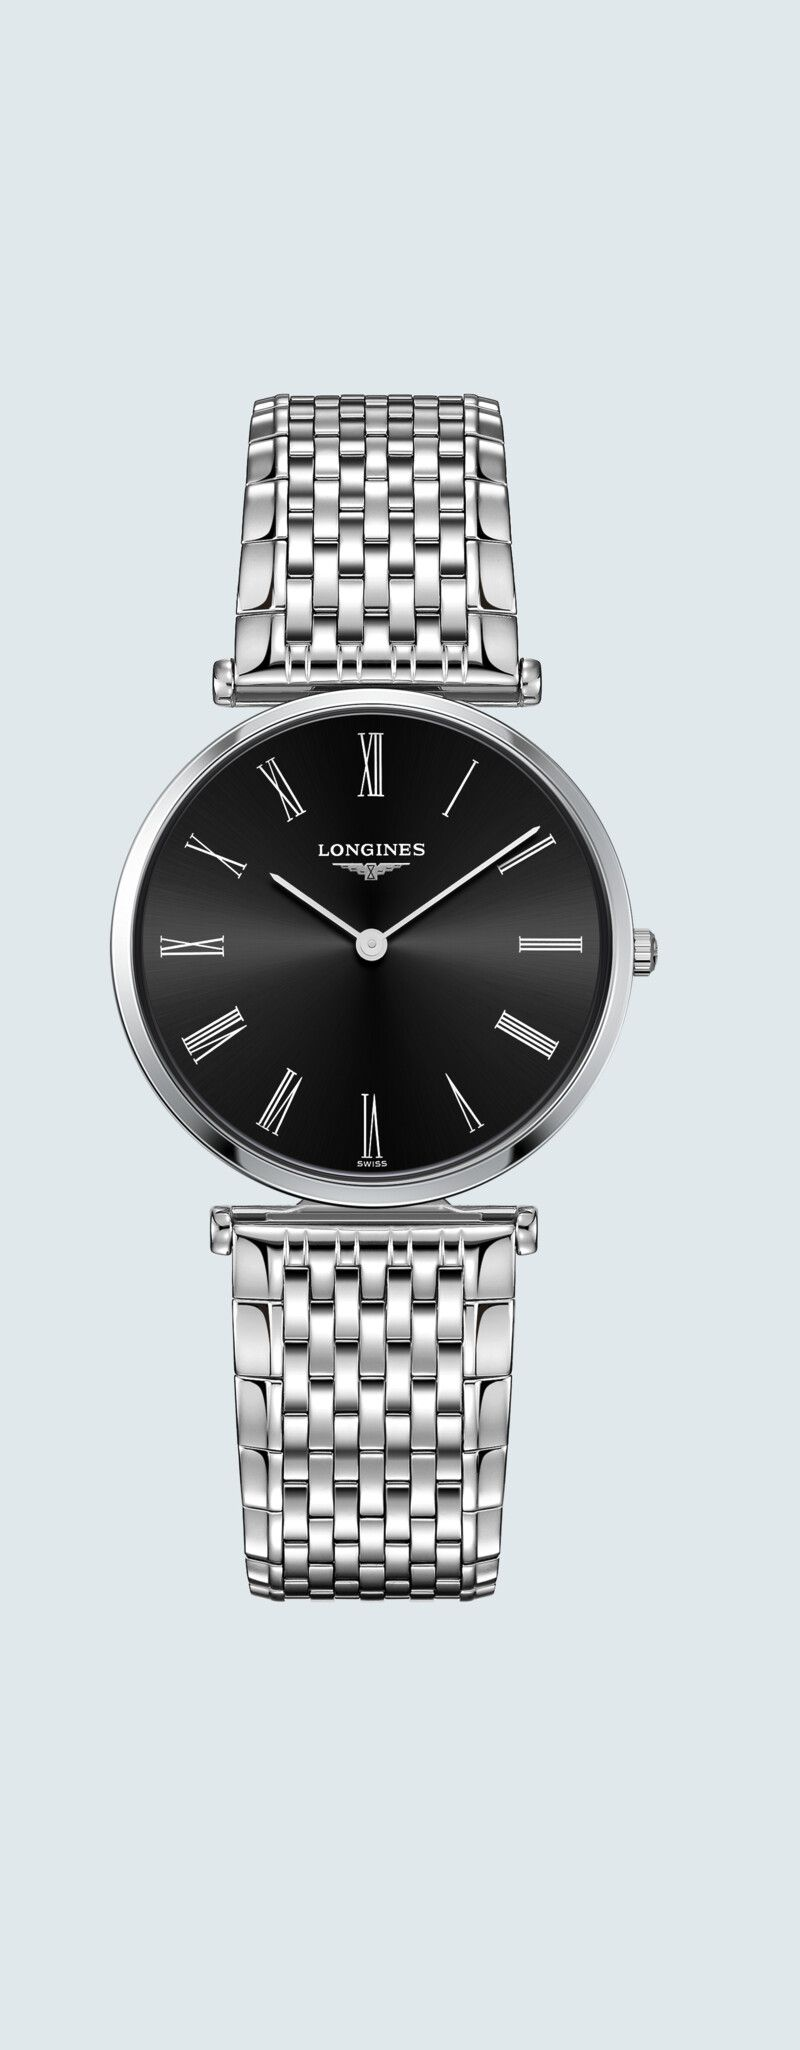 33.00 mm Stainless steel case with Sunray black dial and Stainless steel strap - case zoom view